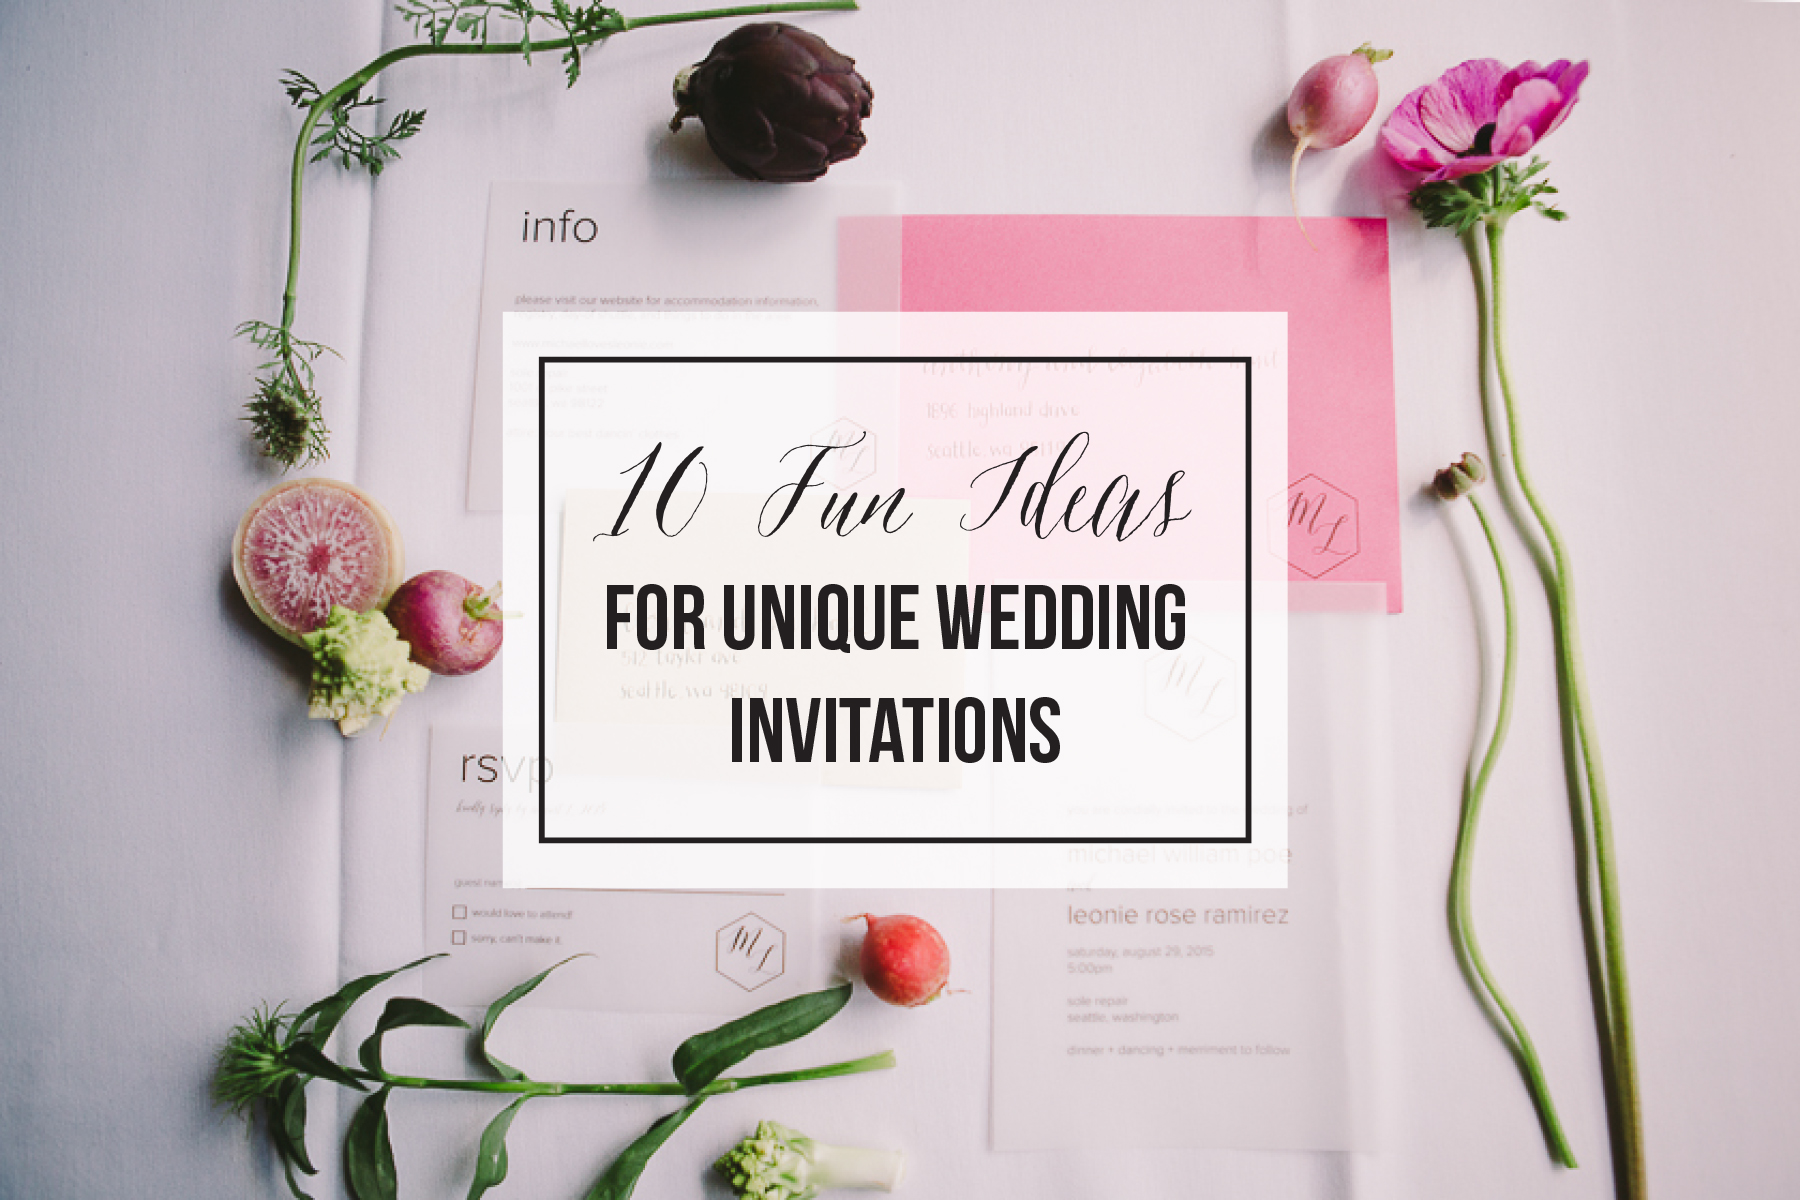 10 Fun Ideas For Unique Wedding